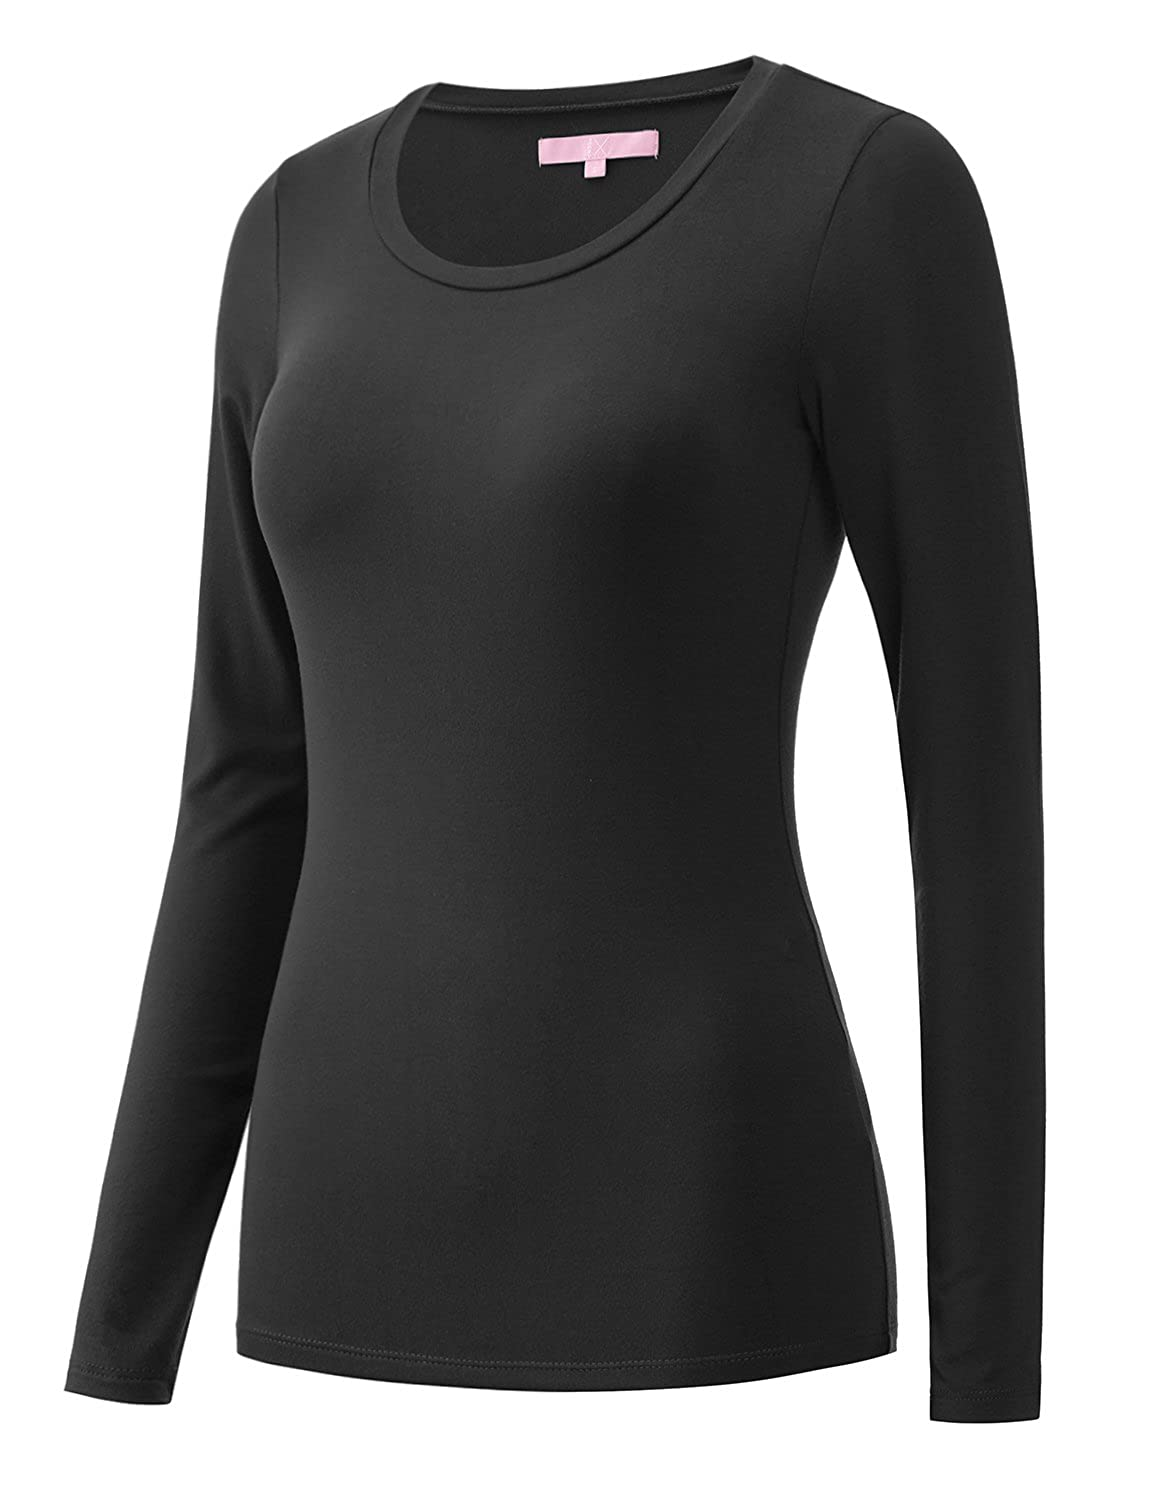 Regna X Bother Women's Long Sleeve Performance Athletic Shirts (Round or V Neck) 8ATBA17705_P